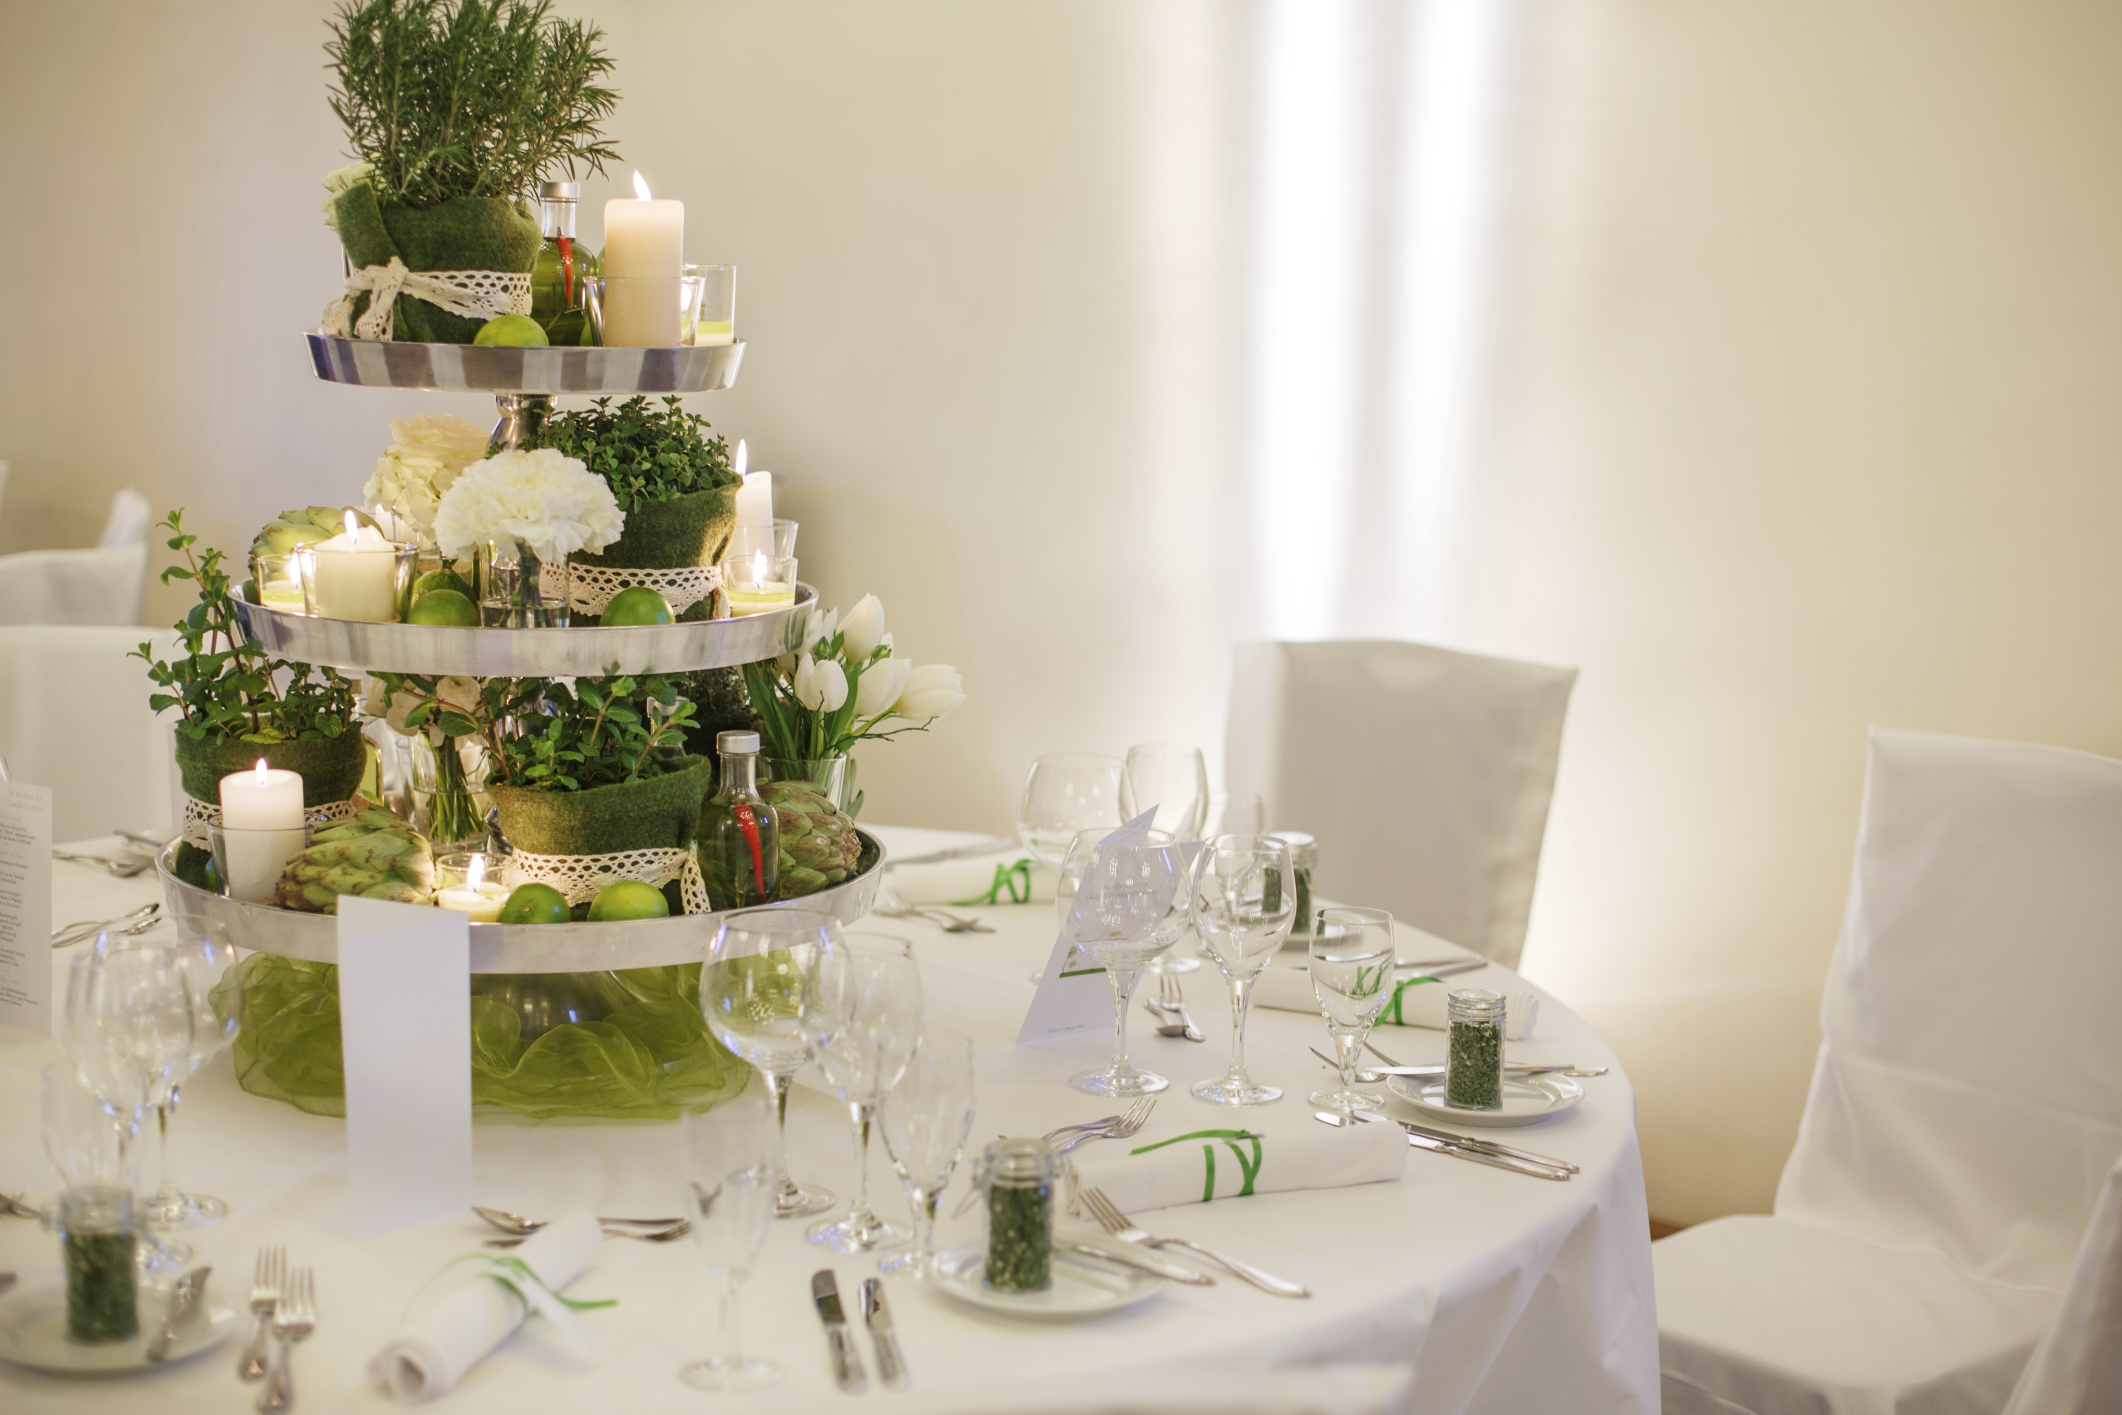 Four ideas for wedding table decorations | Easy Weddings UK